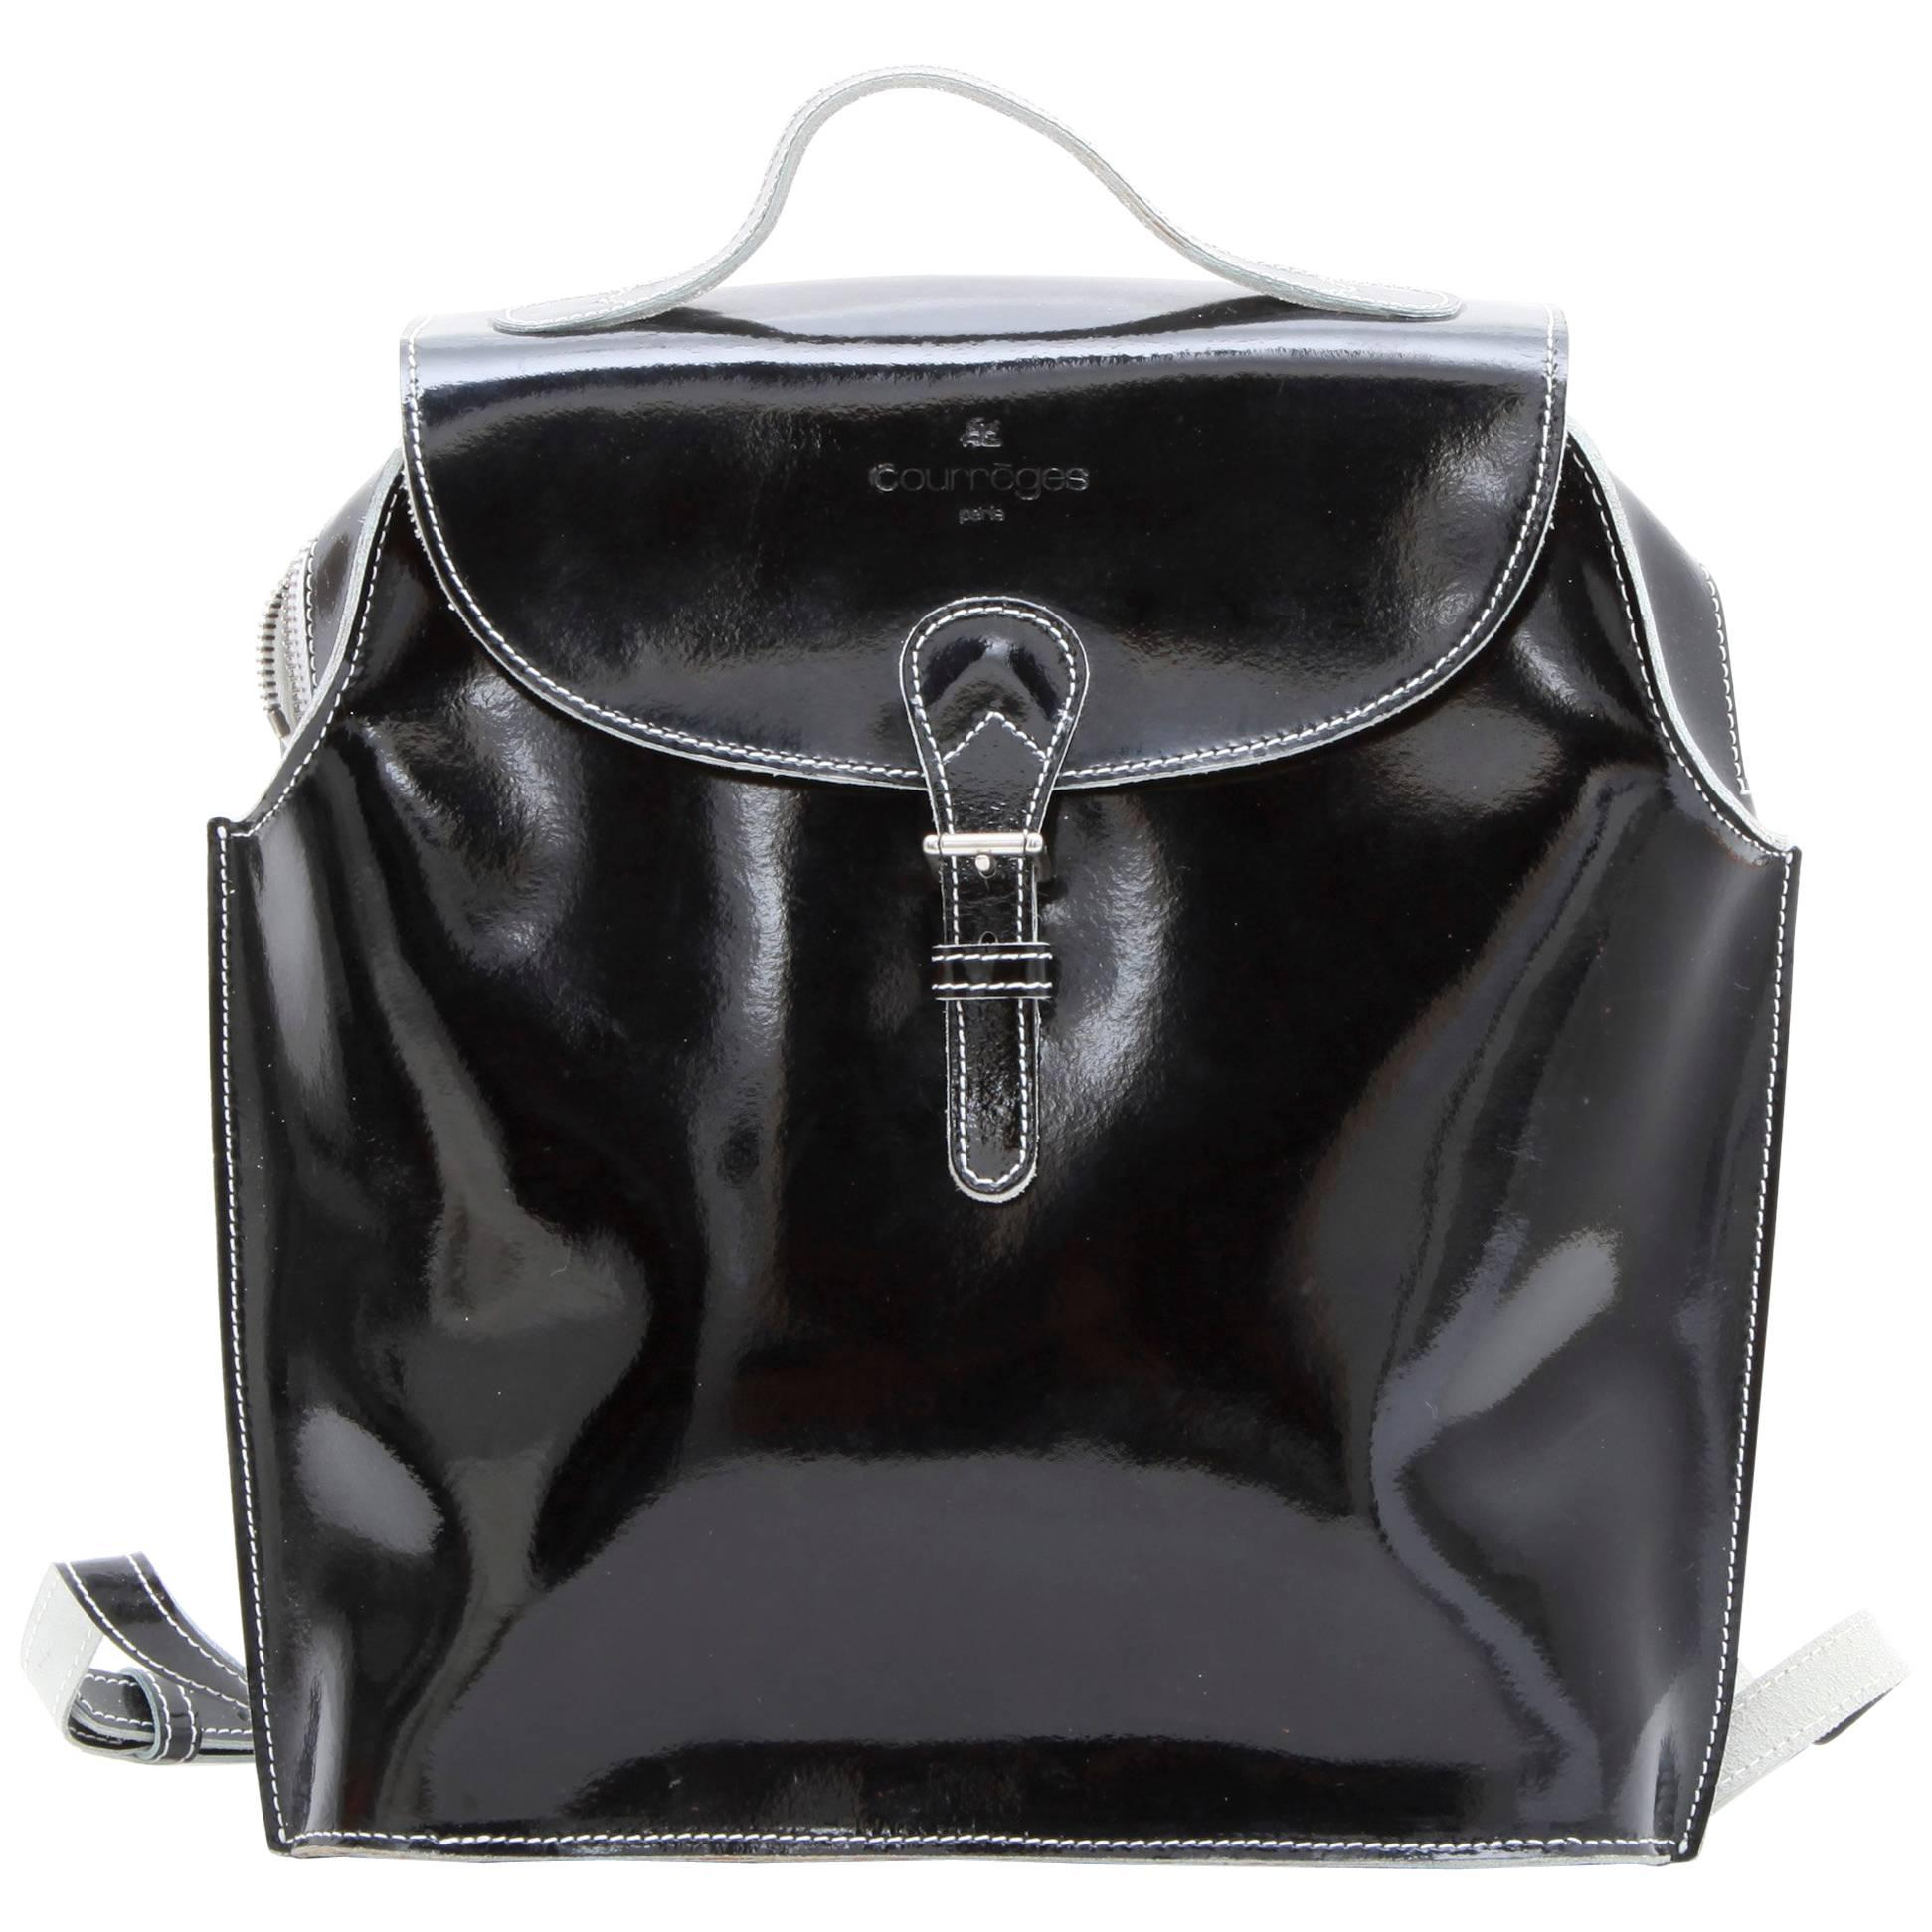 André Courrèges Black Courreges Leather Shoulder Bag AYbuBW